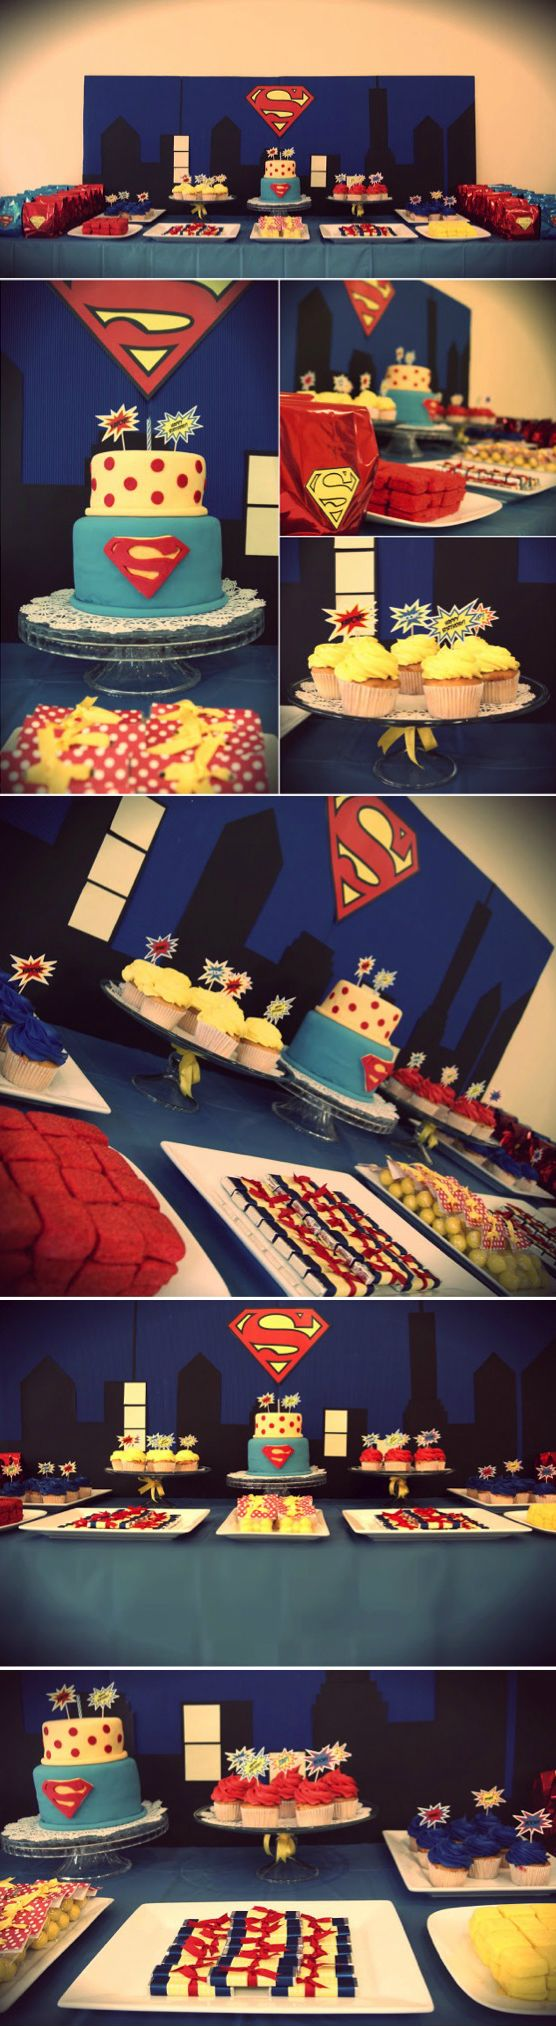 Sweet Table: Superman Birthday Party / Superhero theme for dessert table / Superman Inspired - Mesa de postres y dulces